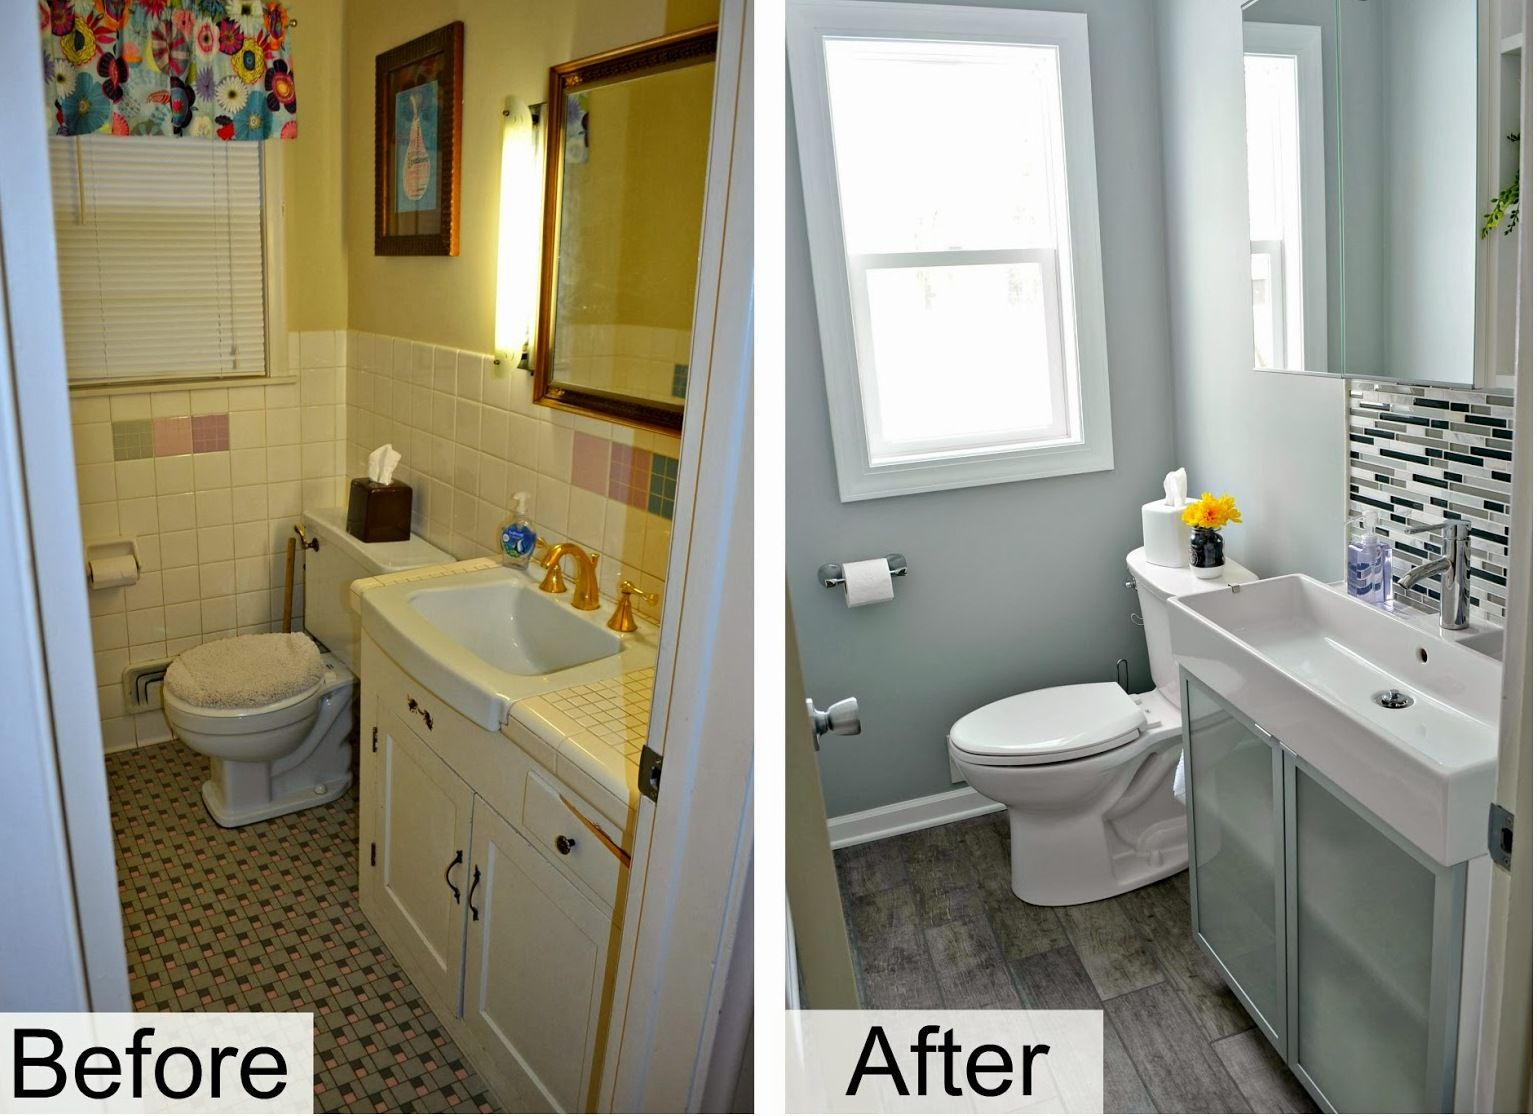 Diy Bathroom Remodel Ideas For Average People Diy Bathroom - How to renovate a bathroom for small bathroom ideas